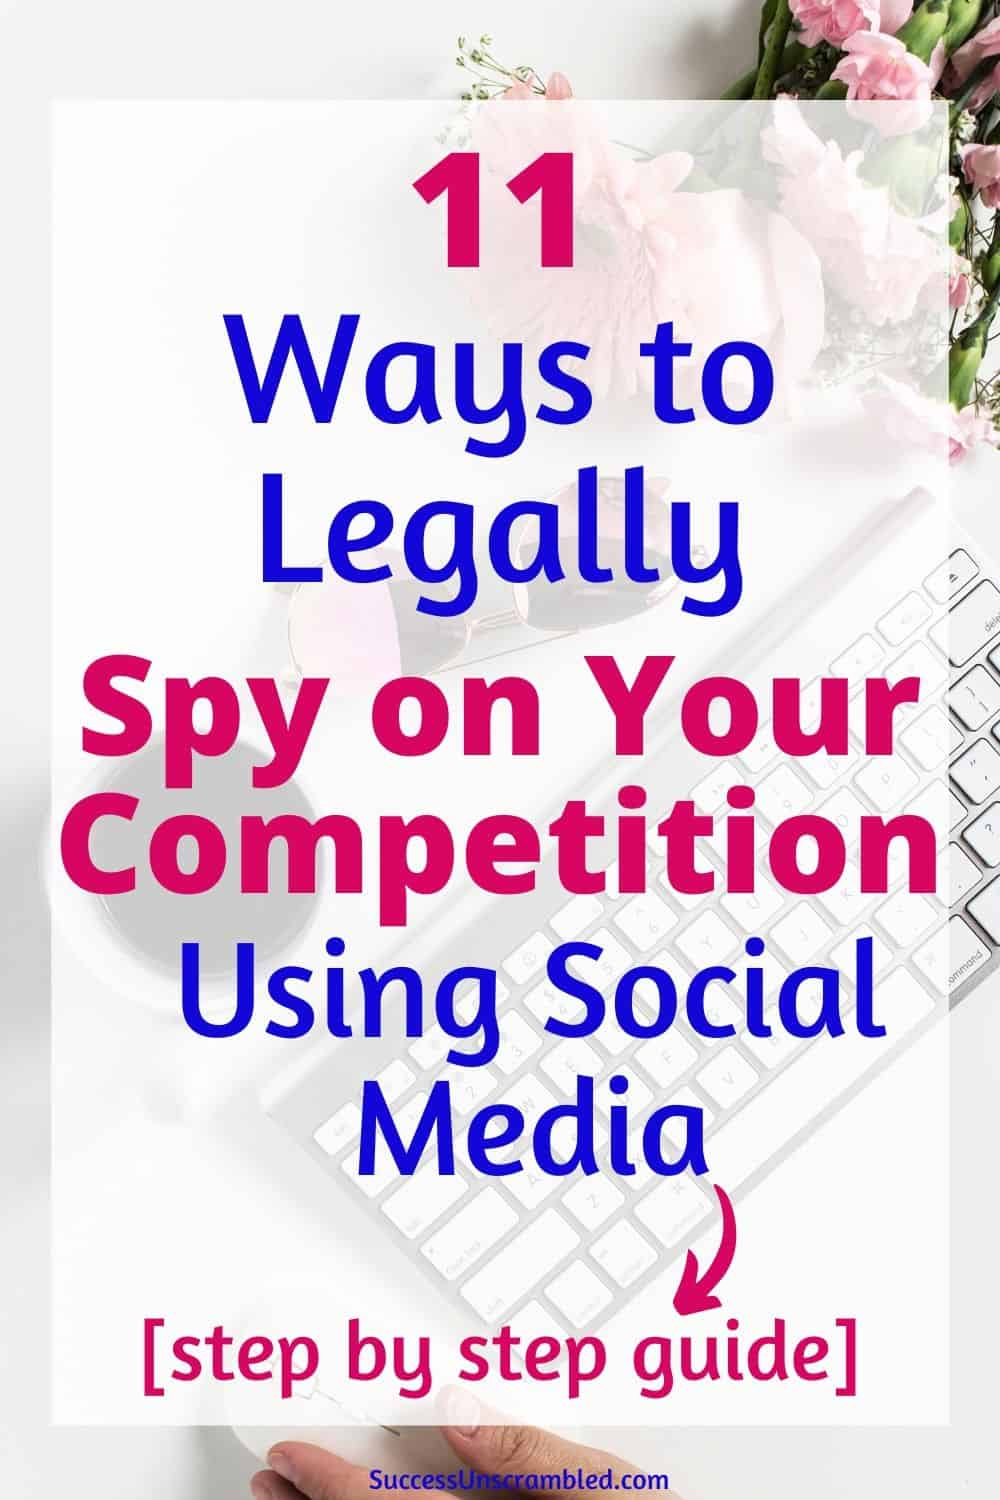 social listening, social media listening, social listening strategy, spying on your competition, social monitoring, social media monitoring, social listening tools - pin 1